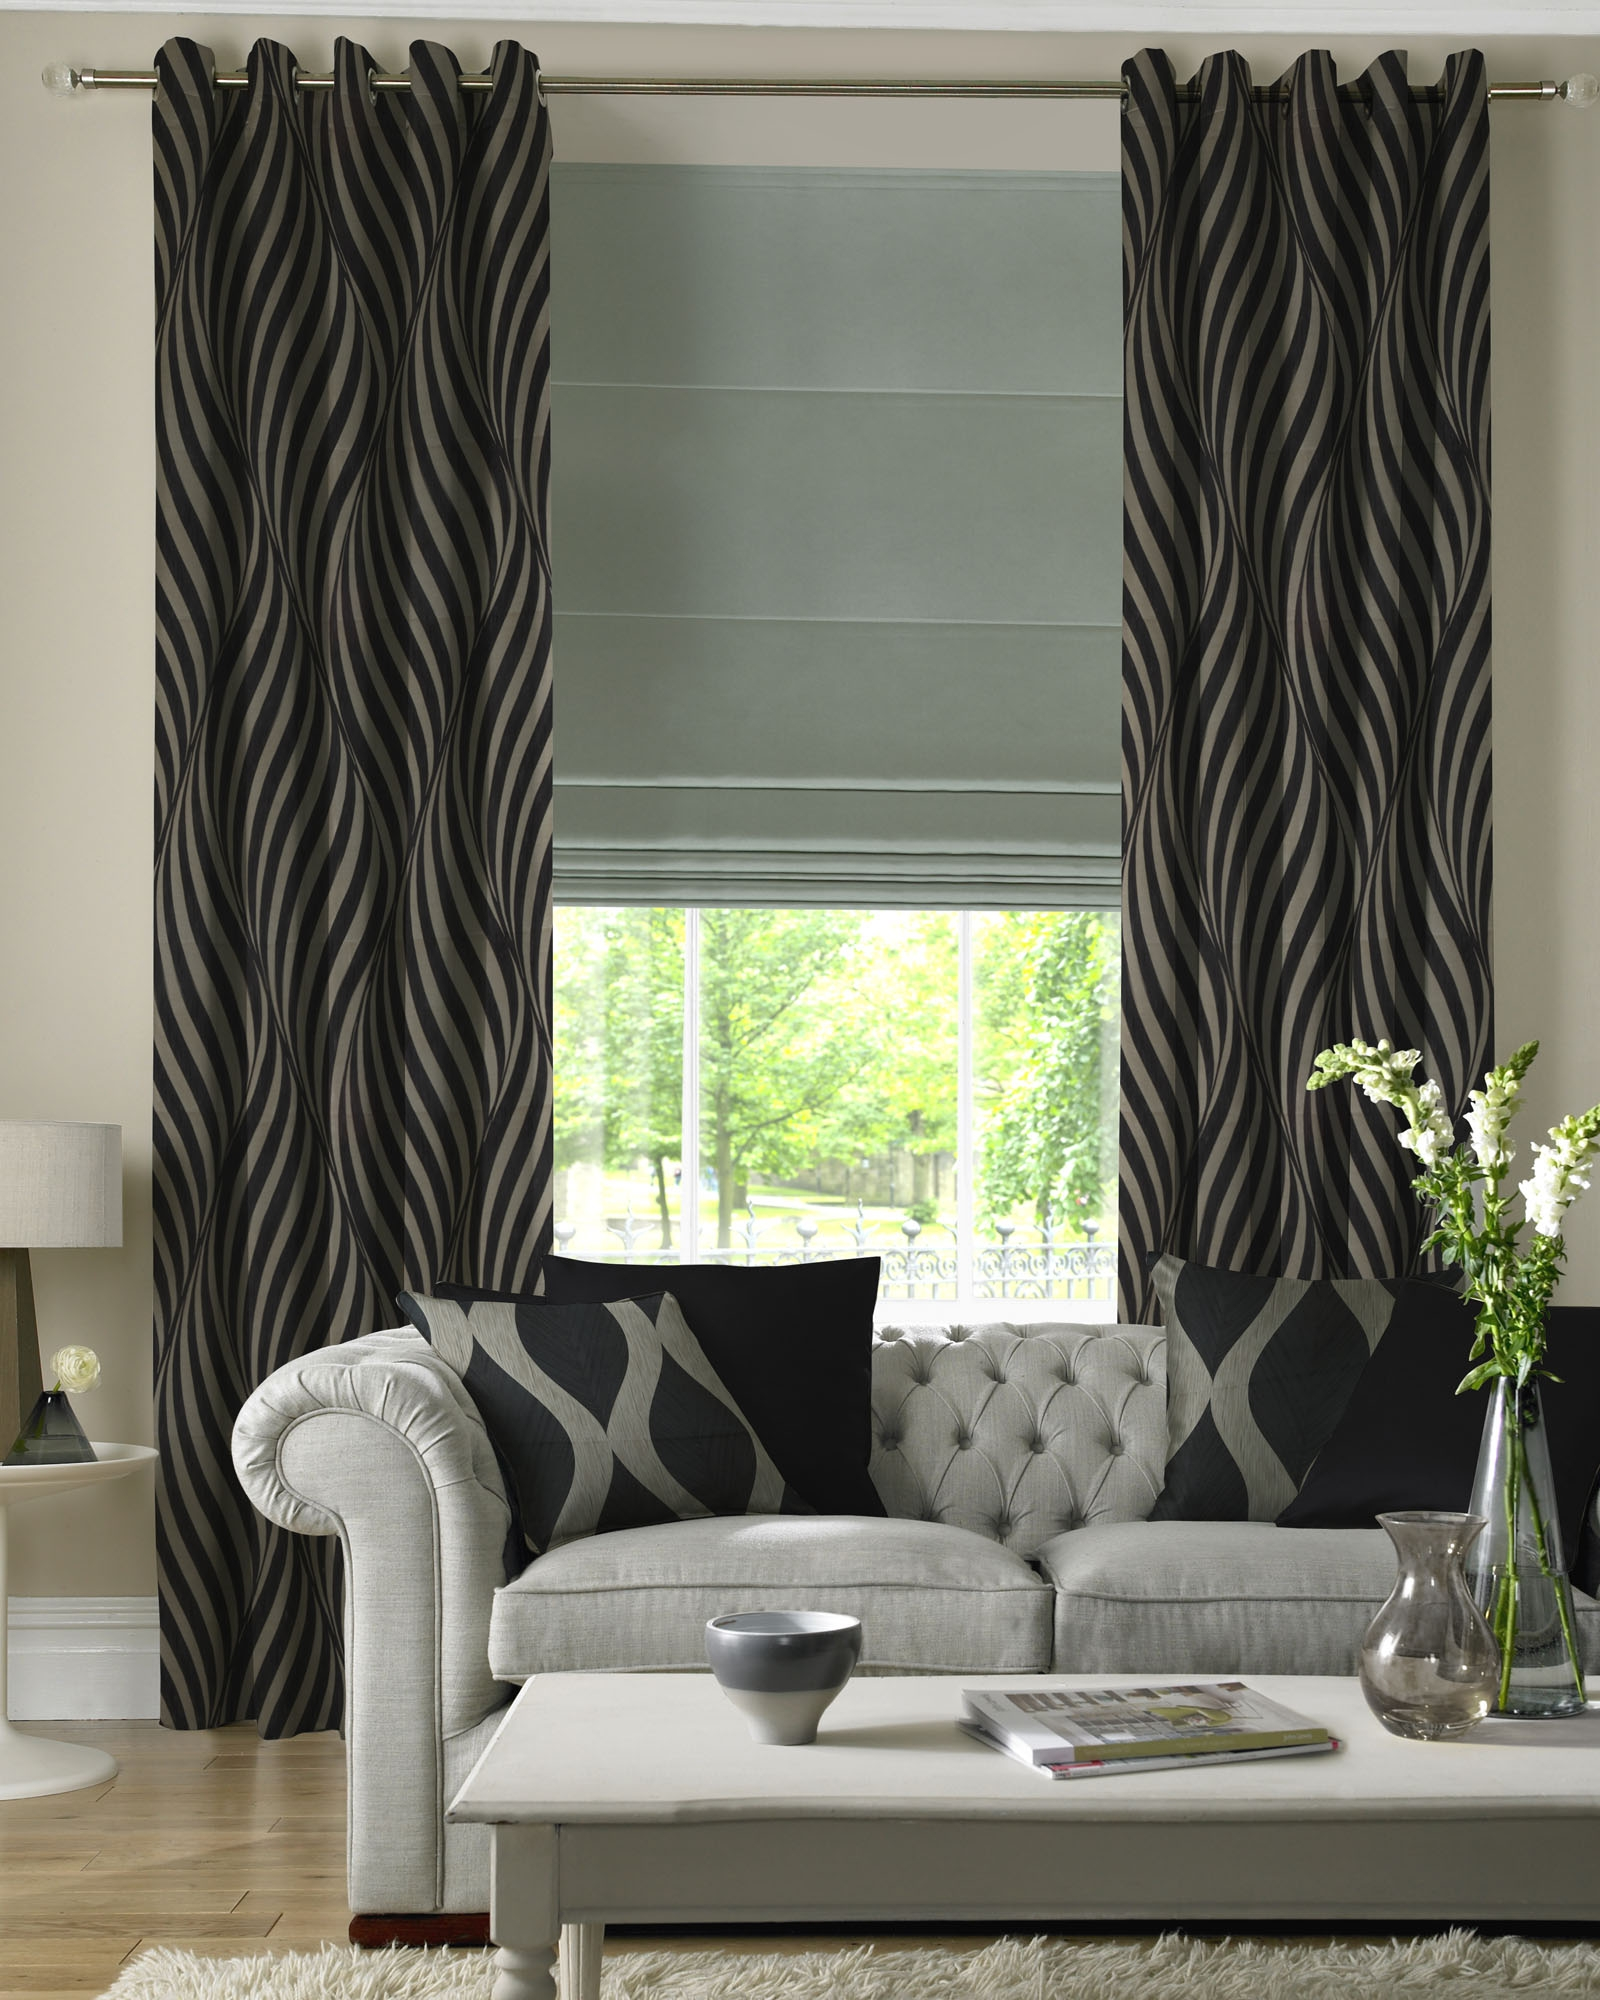 Curtains With Matching Roller Blinds Best Curtains 2017 Throughout Curtains With Matching Roman Blinds (Photo 2 of 15)